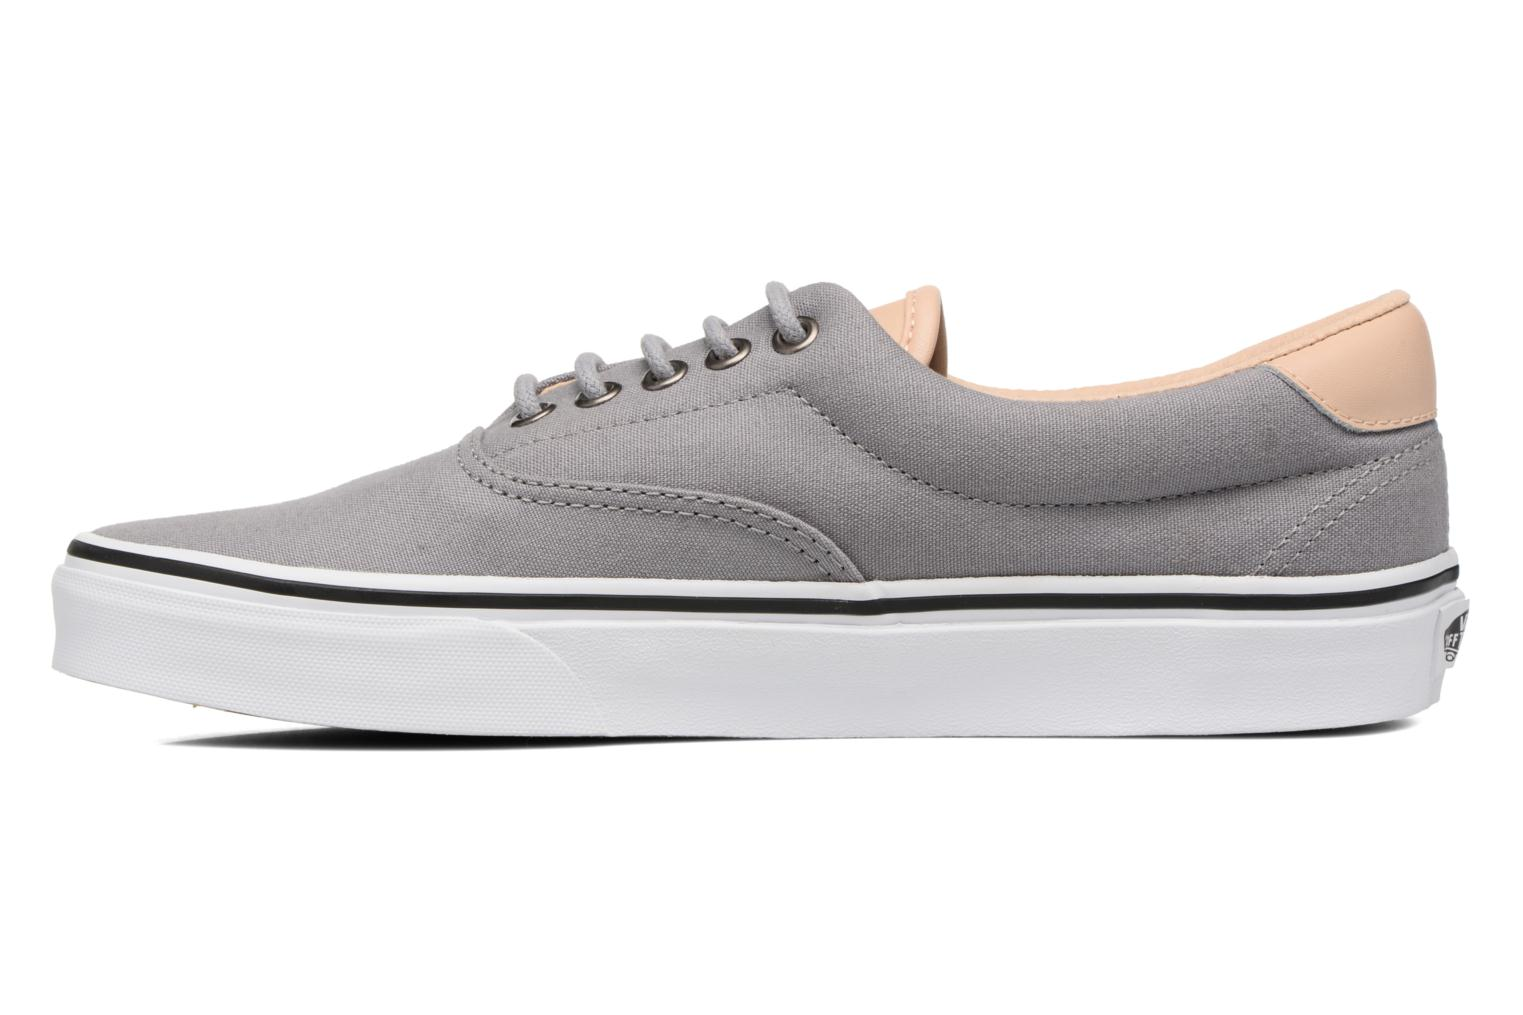 Era 59 (Veggie Tan) Frost Gray/True White